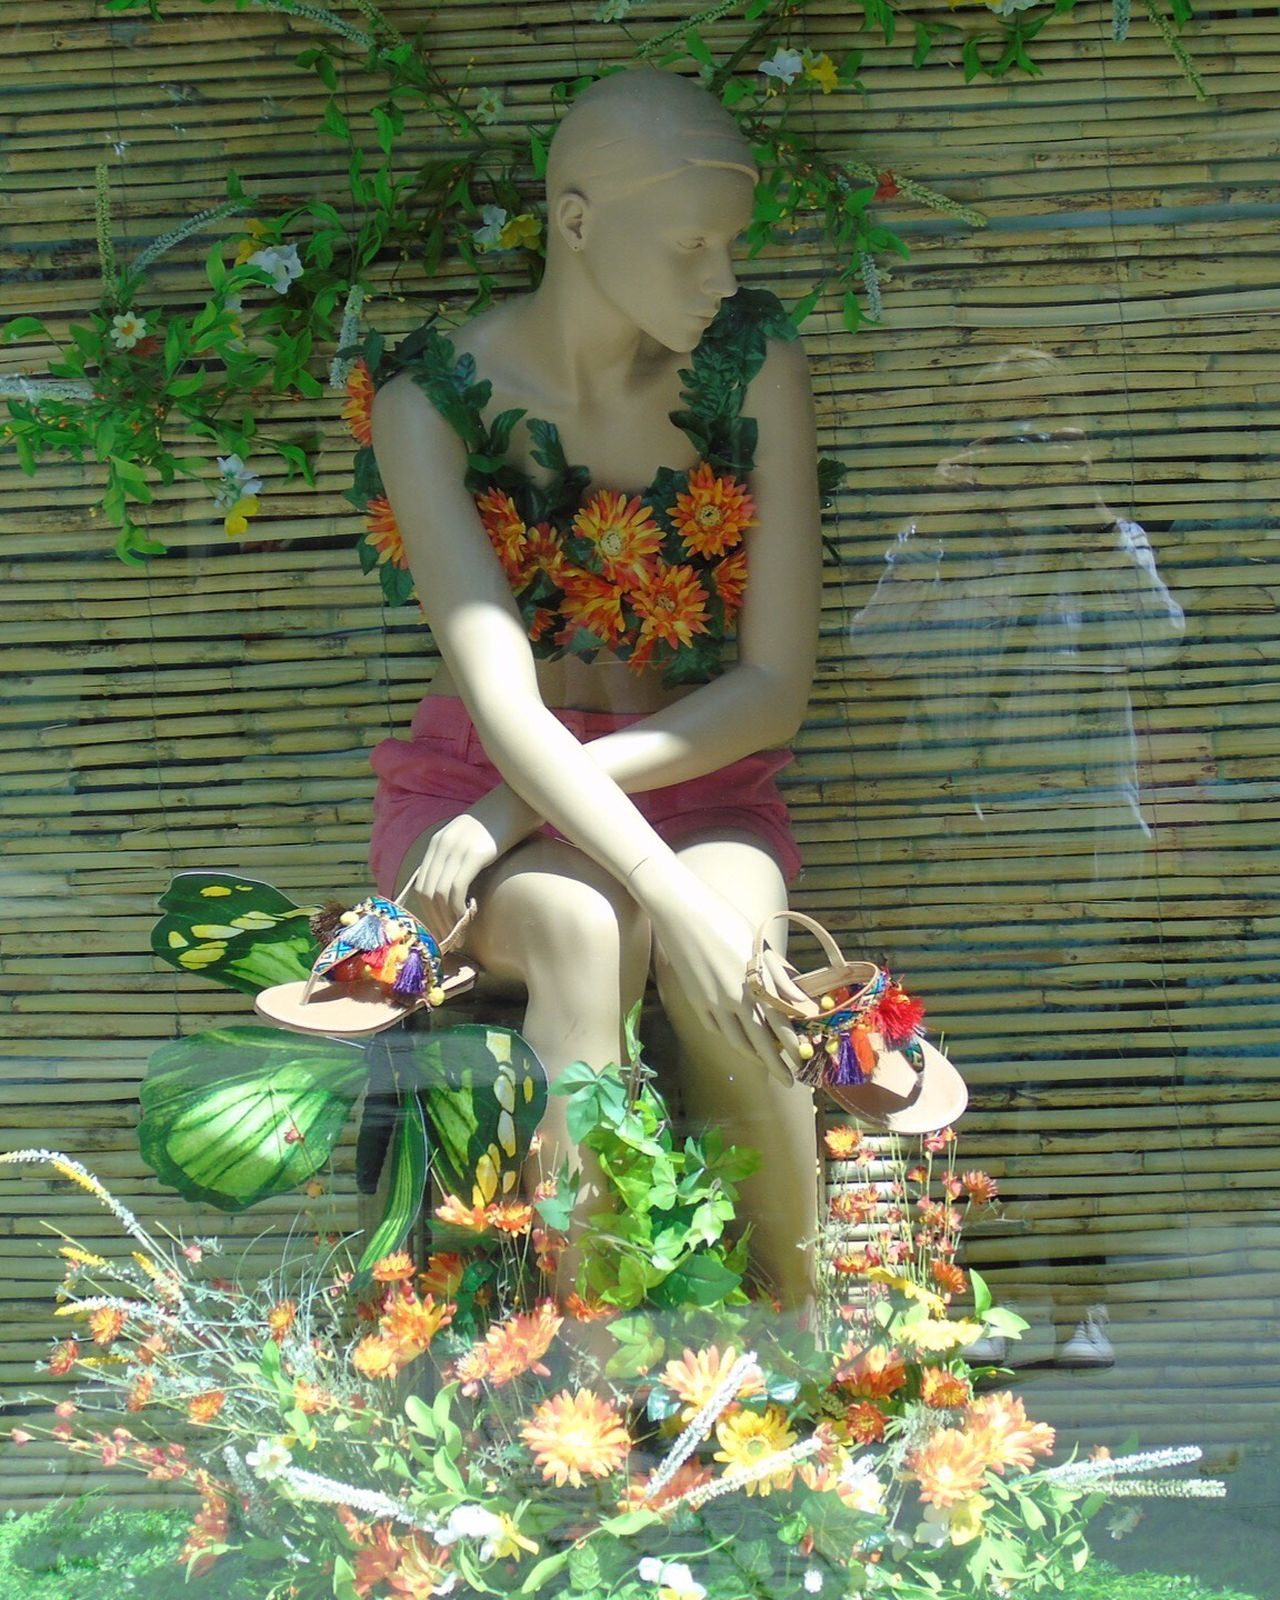 Plant The Street Photographer - 2017 EyeEm Awards Flower Human Representation Statue Art And Craft Outdoors Leaf Sculpture Day Growth Building Exterior Nature Built Structure Sitting One Person Tree Women Young Women Beautiful Woman Fragility Girona Girona Temps De Flors 2017 Gironamenamora